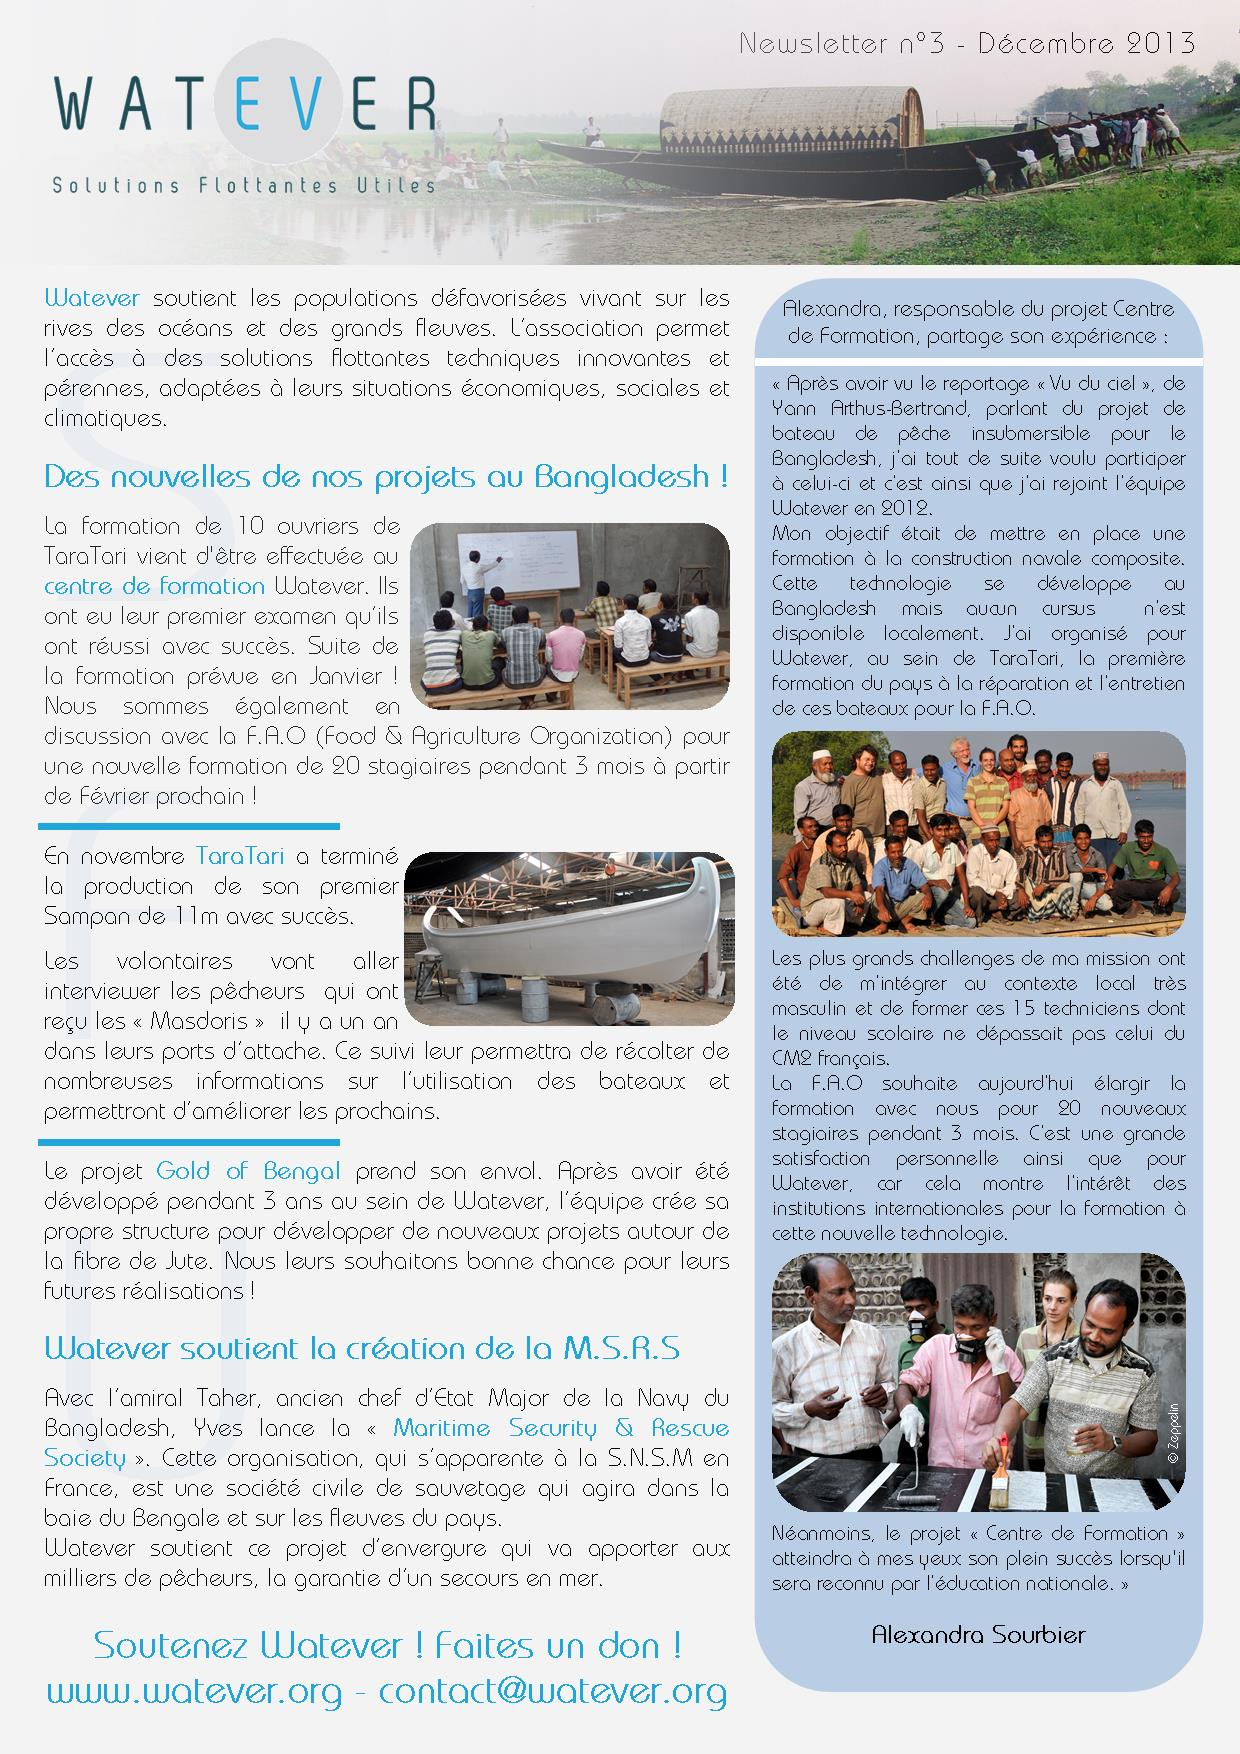 Newsletter Watever n°3 Décembre 2013 Page 1/2